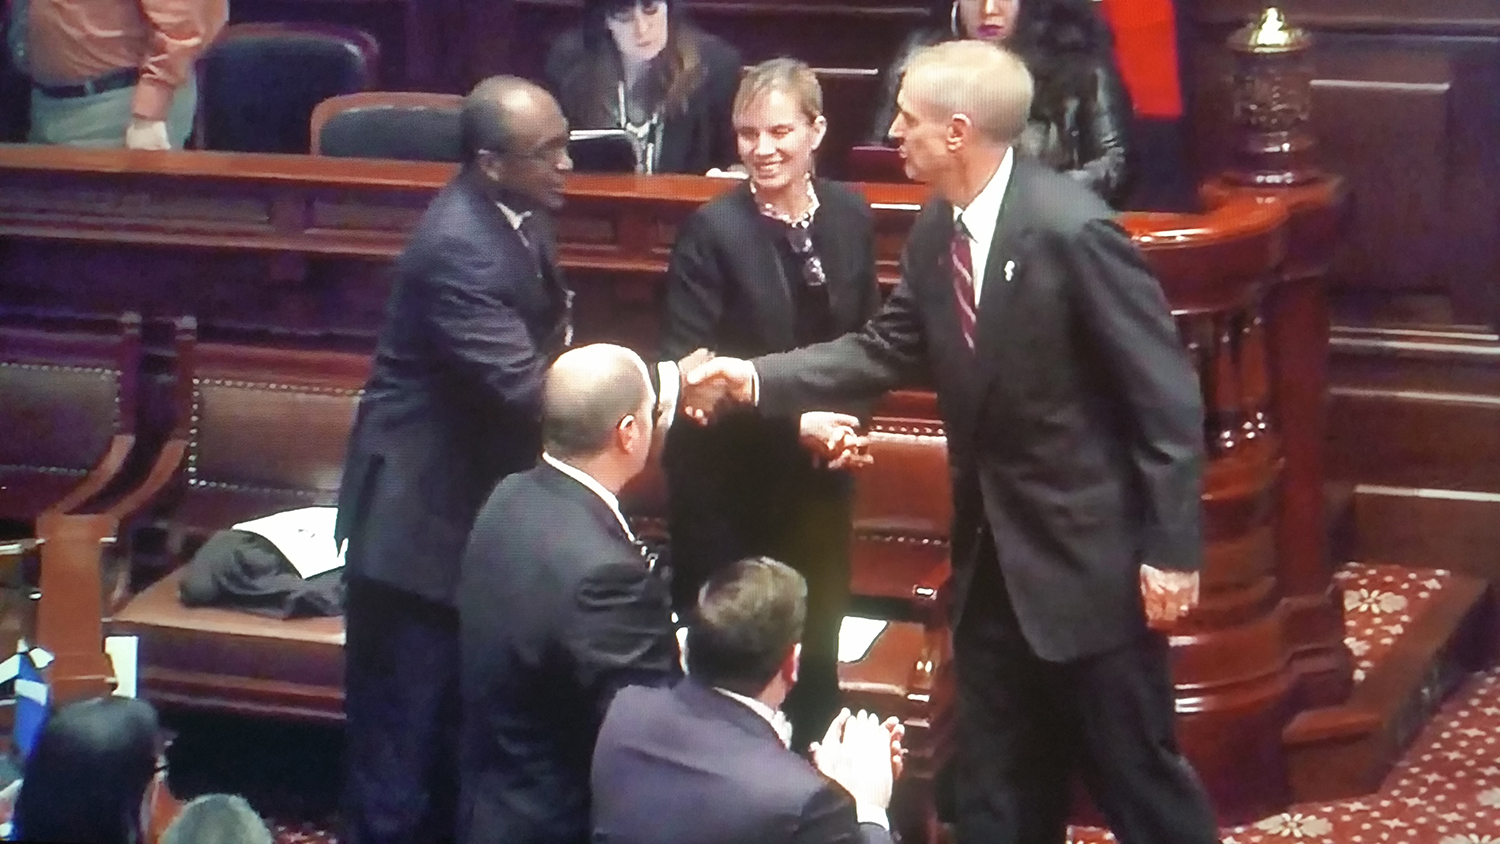 wayne-and-Governor-Rauner-2